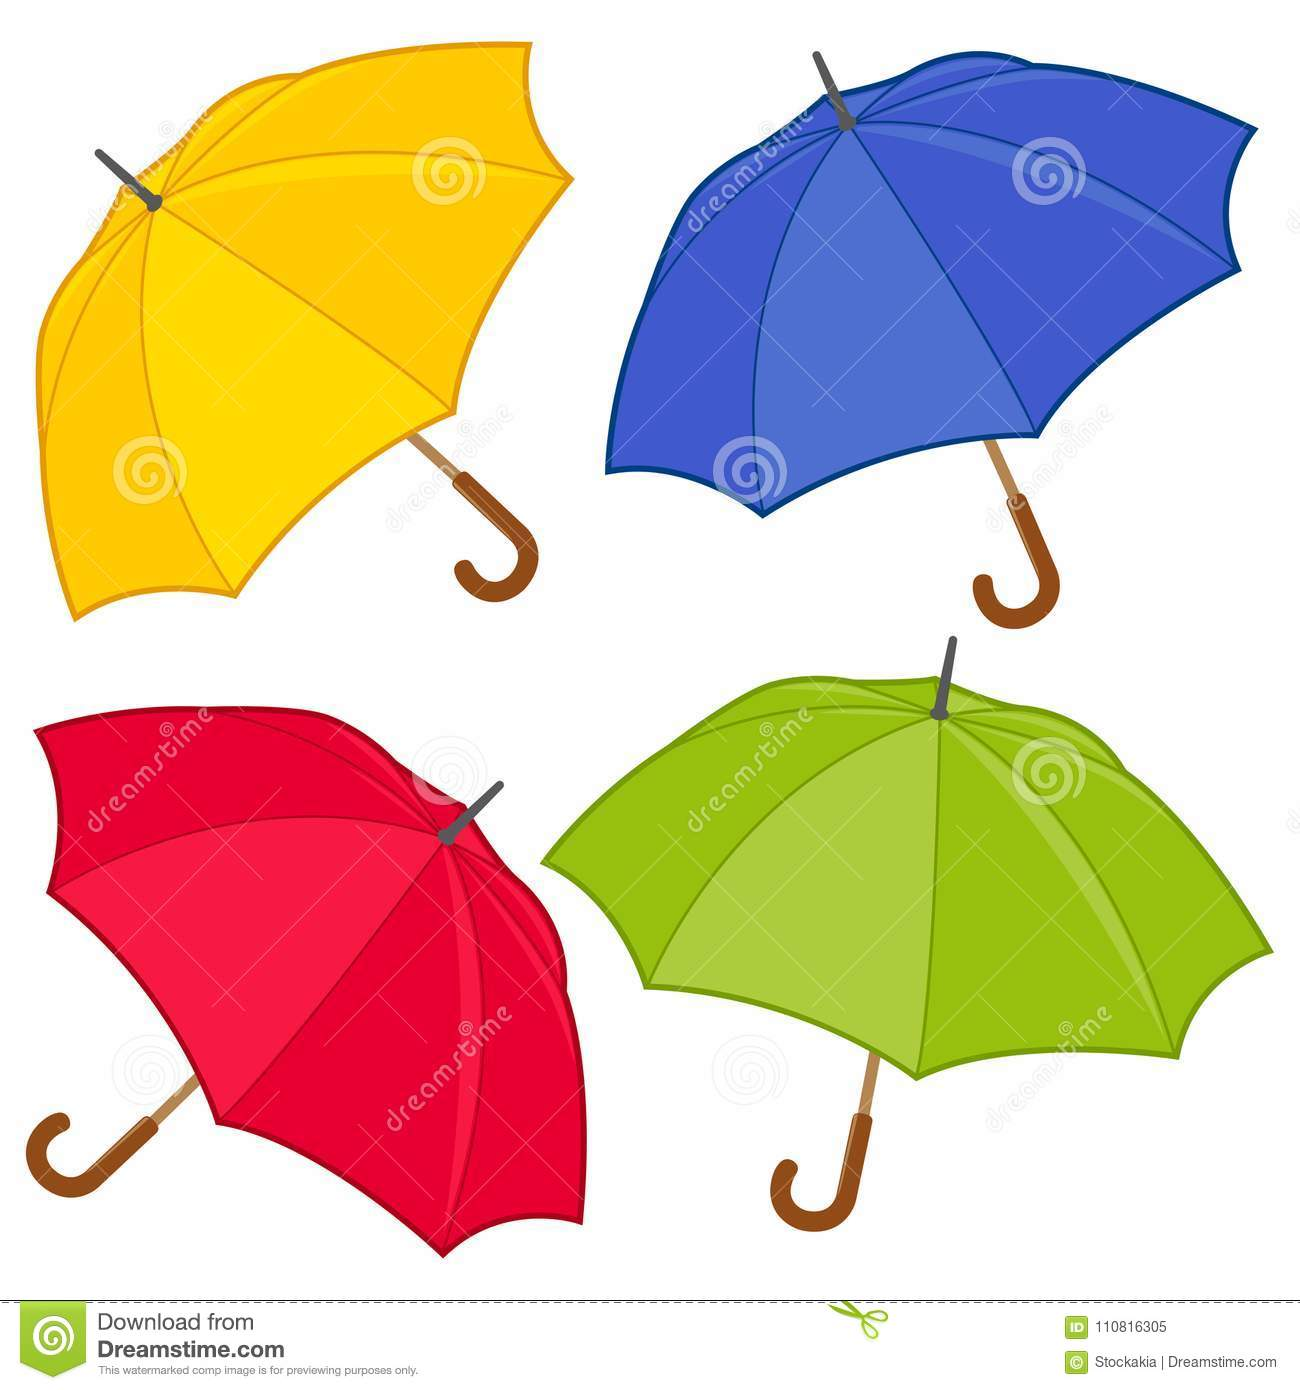 Colorful Umbrellas Vector Collection Stock Vector - Illustration of ...